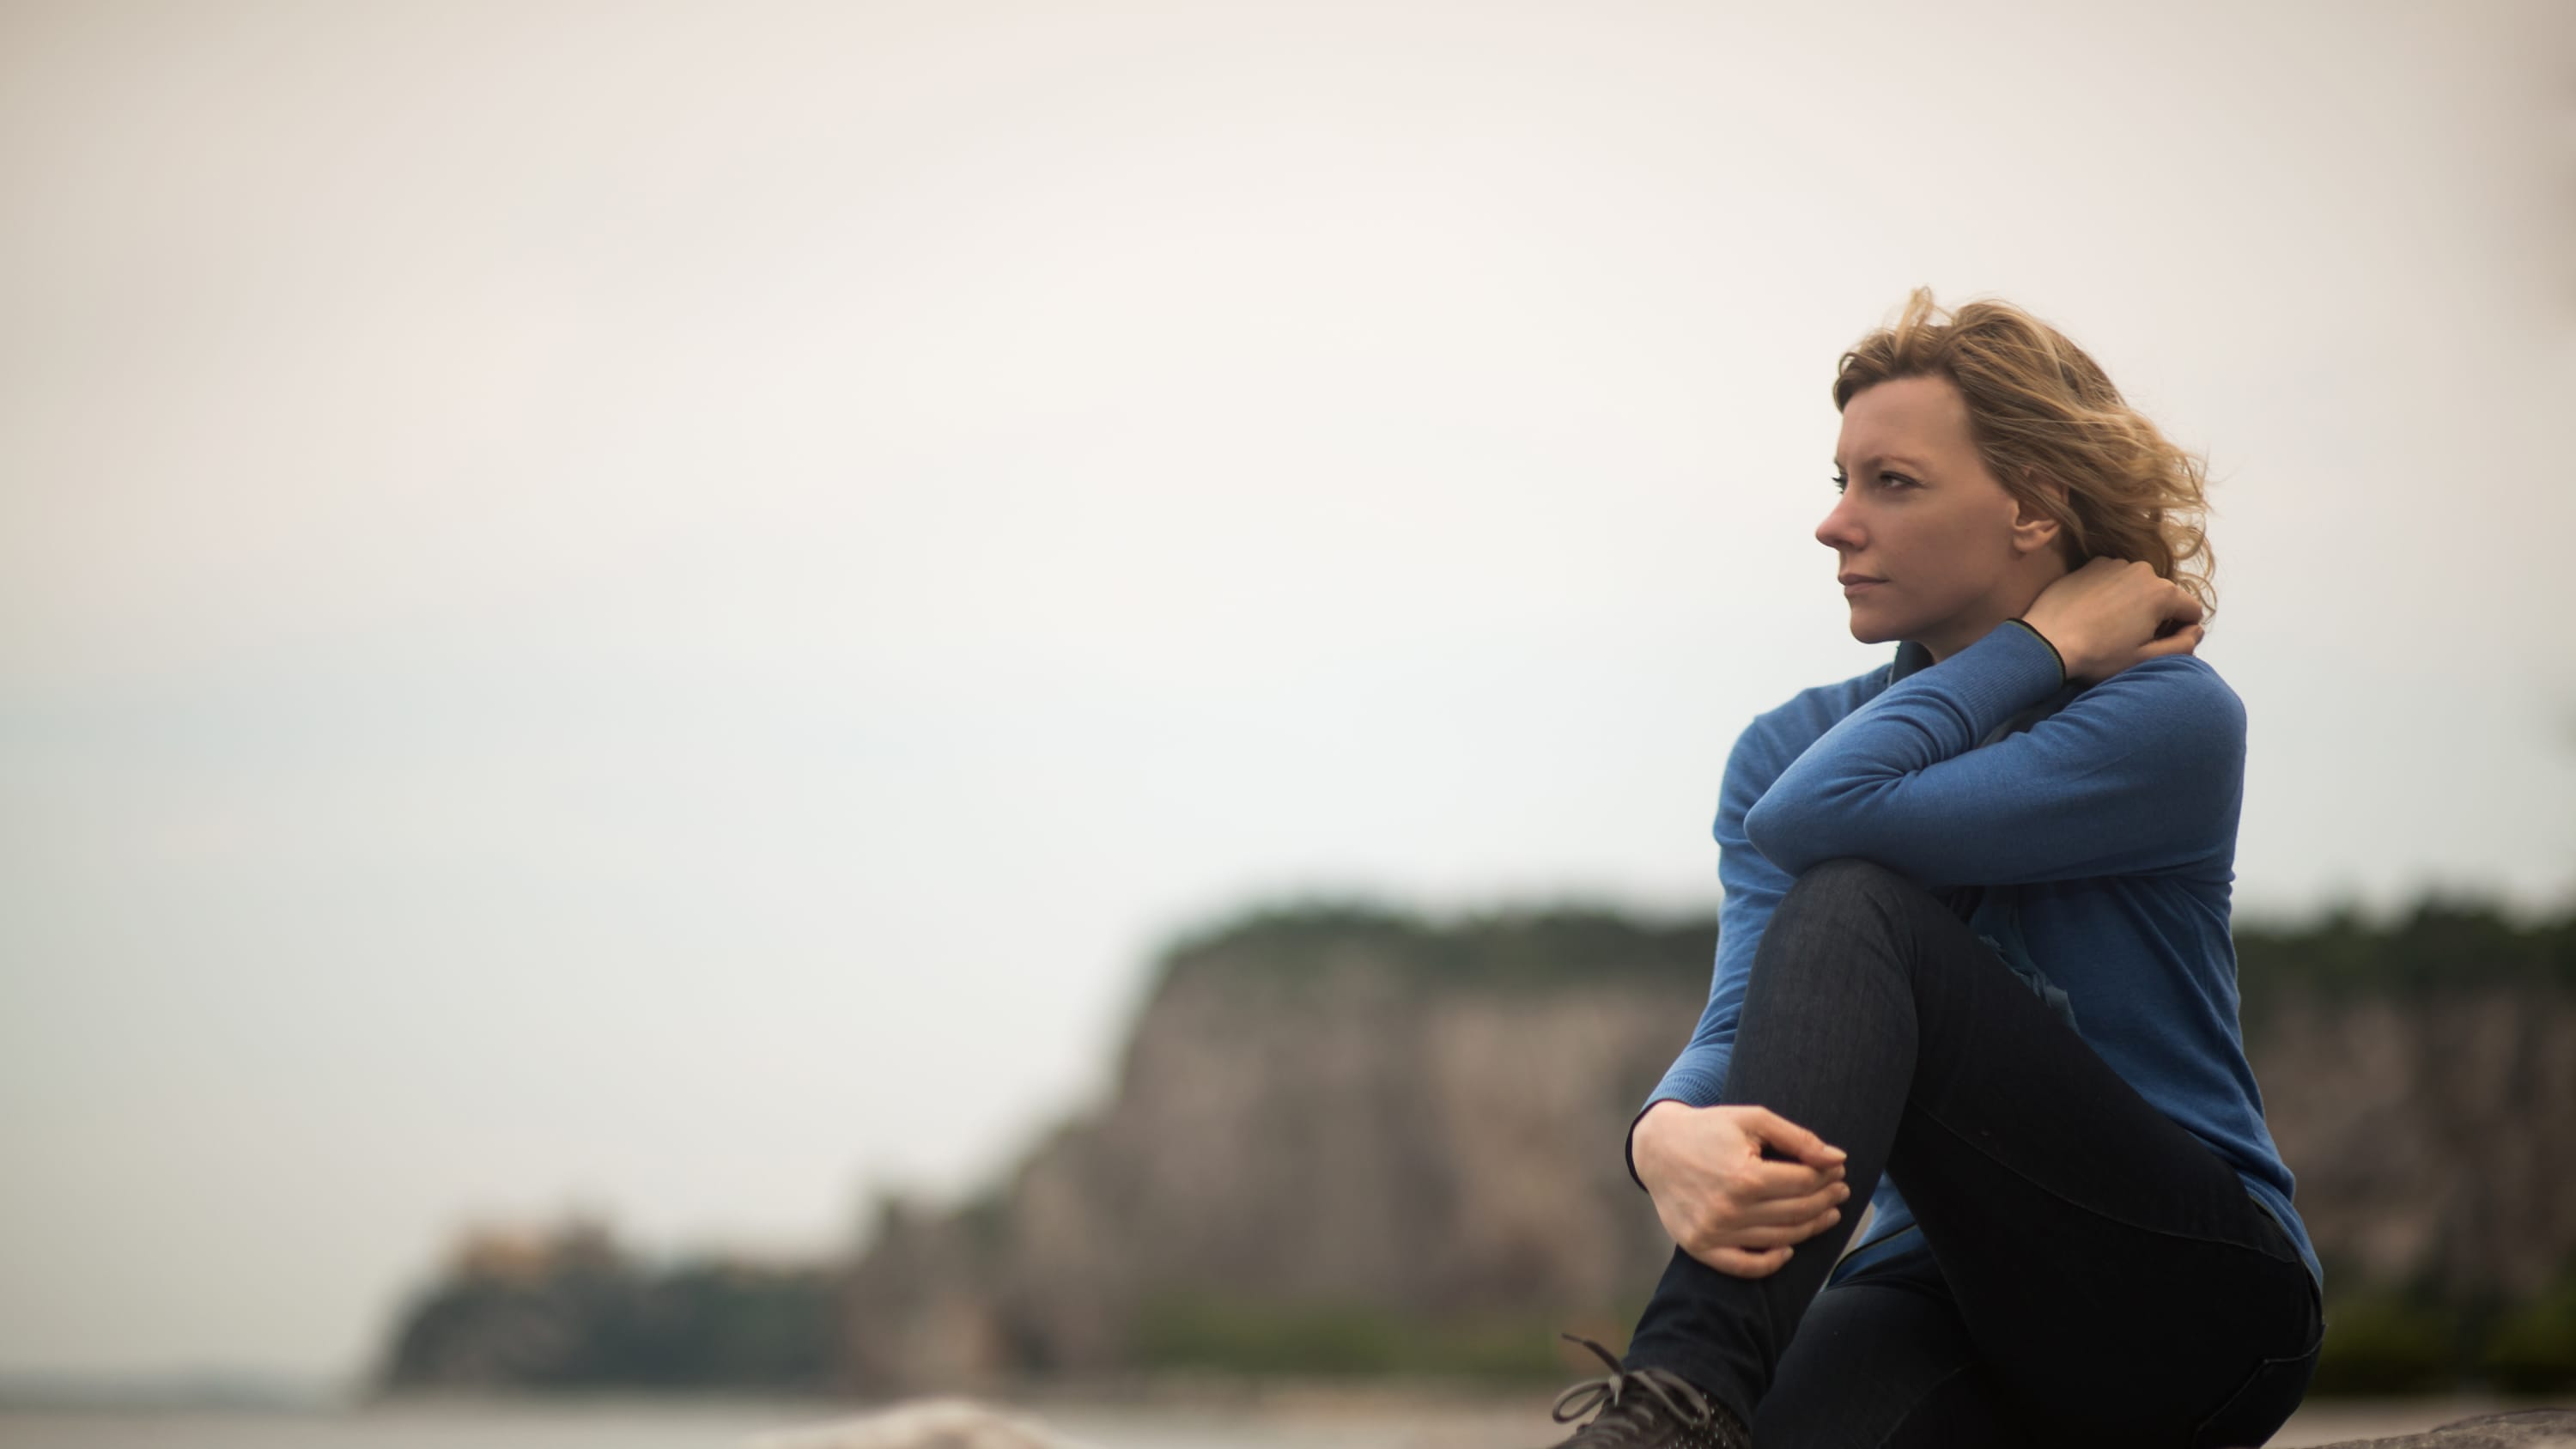 A woman who may need genomic testing for cancer treatment gazes into the distance.